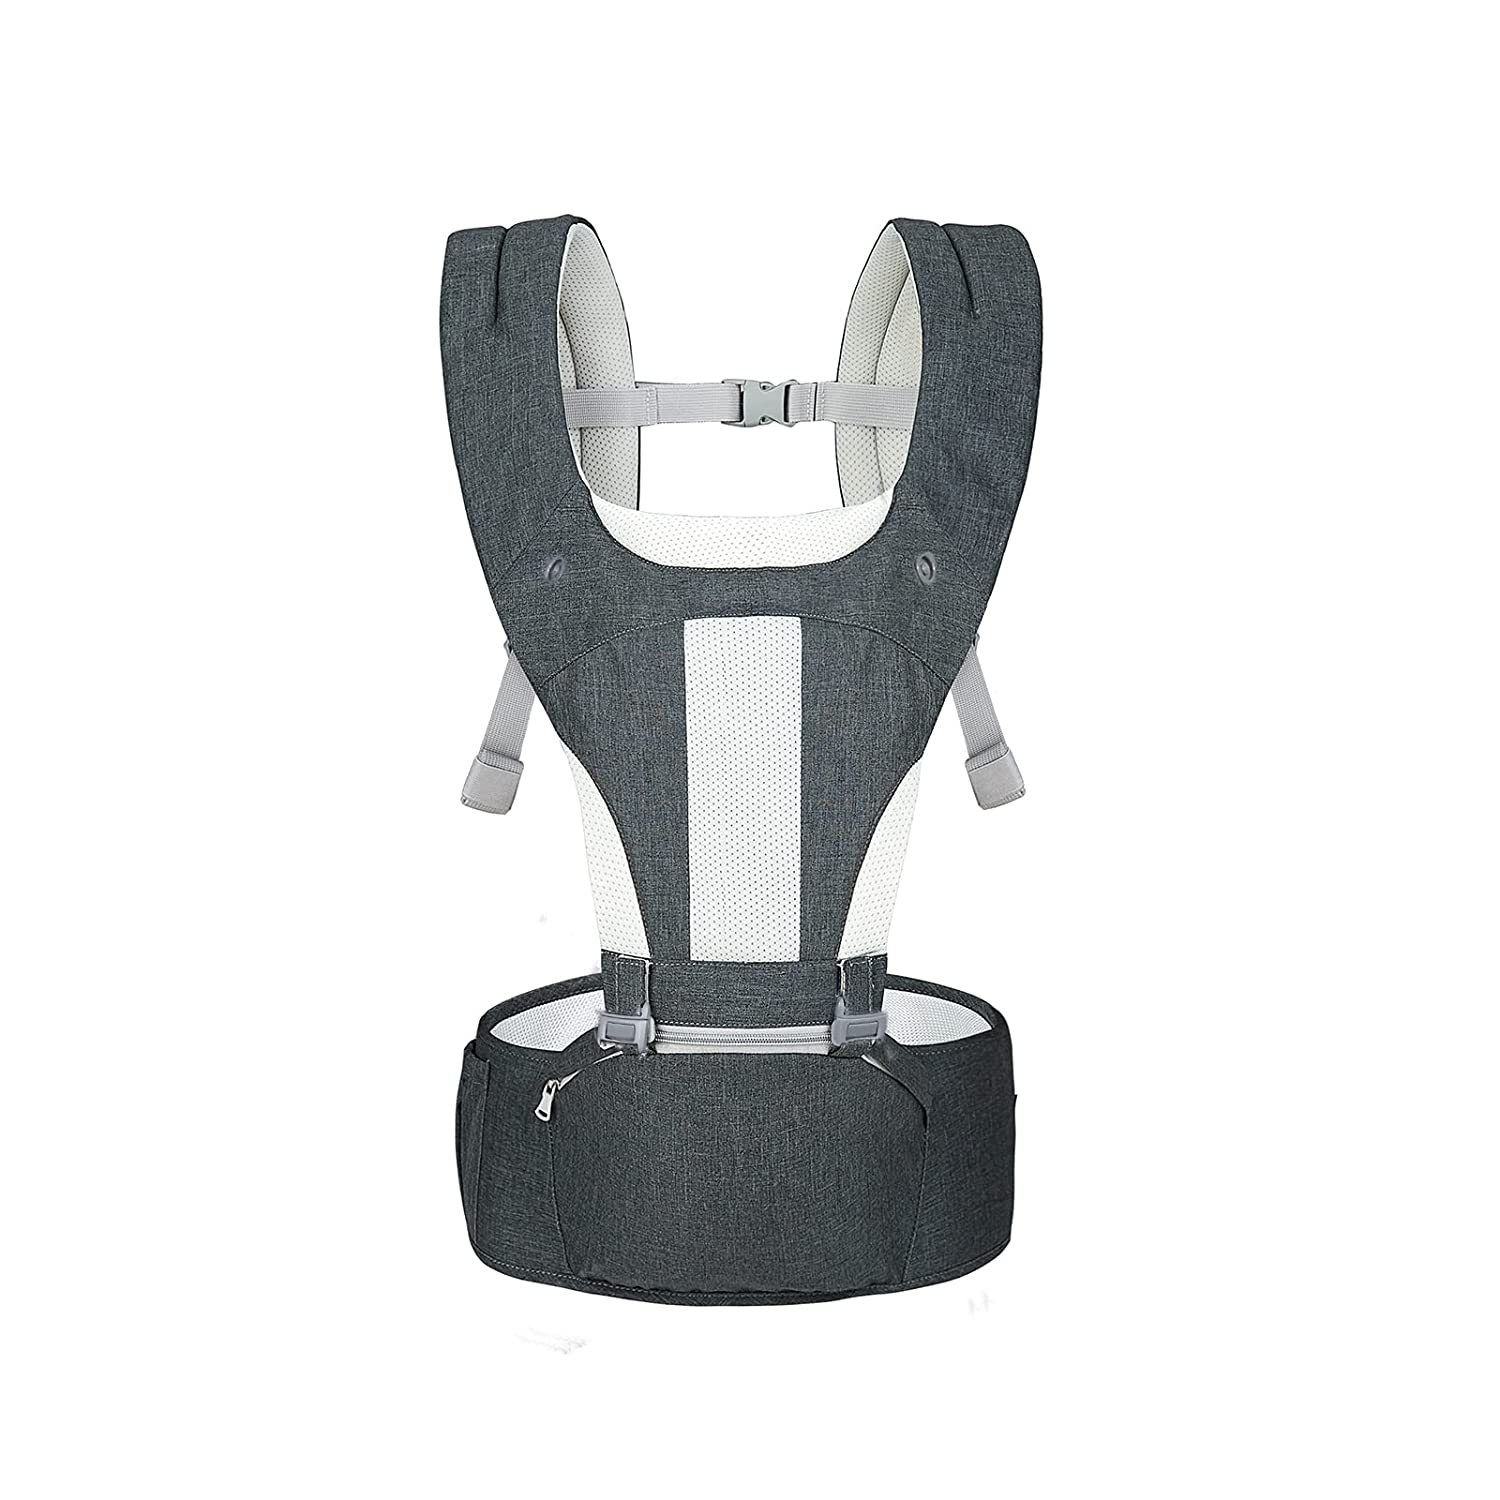 Baby Carrier Hip Seat, 6-in-1 All Carry Position Baby Carrier with Hip Seat for Newborns to Toddlers 3-36M, Soft Breathable Ergonomic Air Mesh and Adjustable Buckles Baby Hip Seat Carrier(Dark Gray)